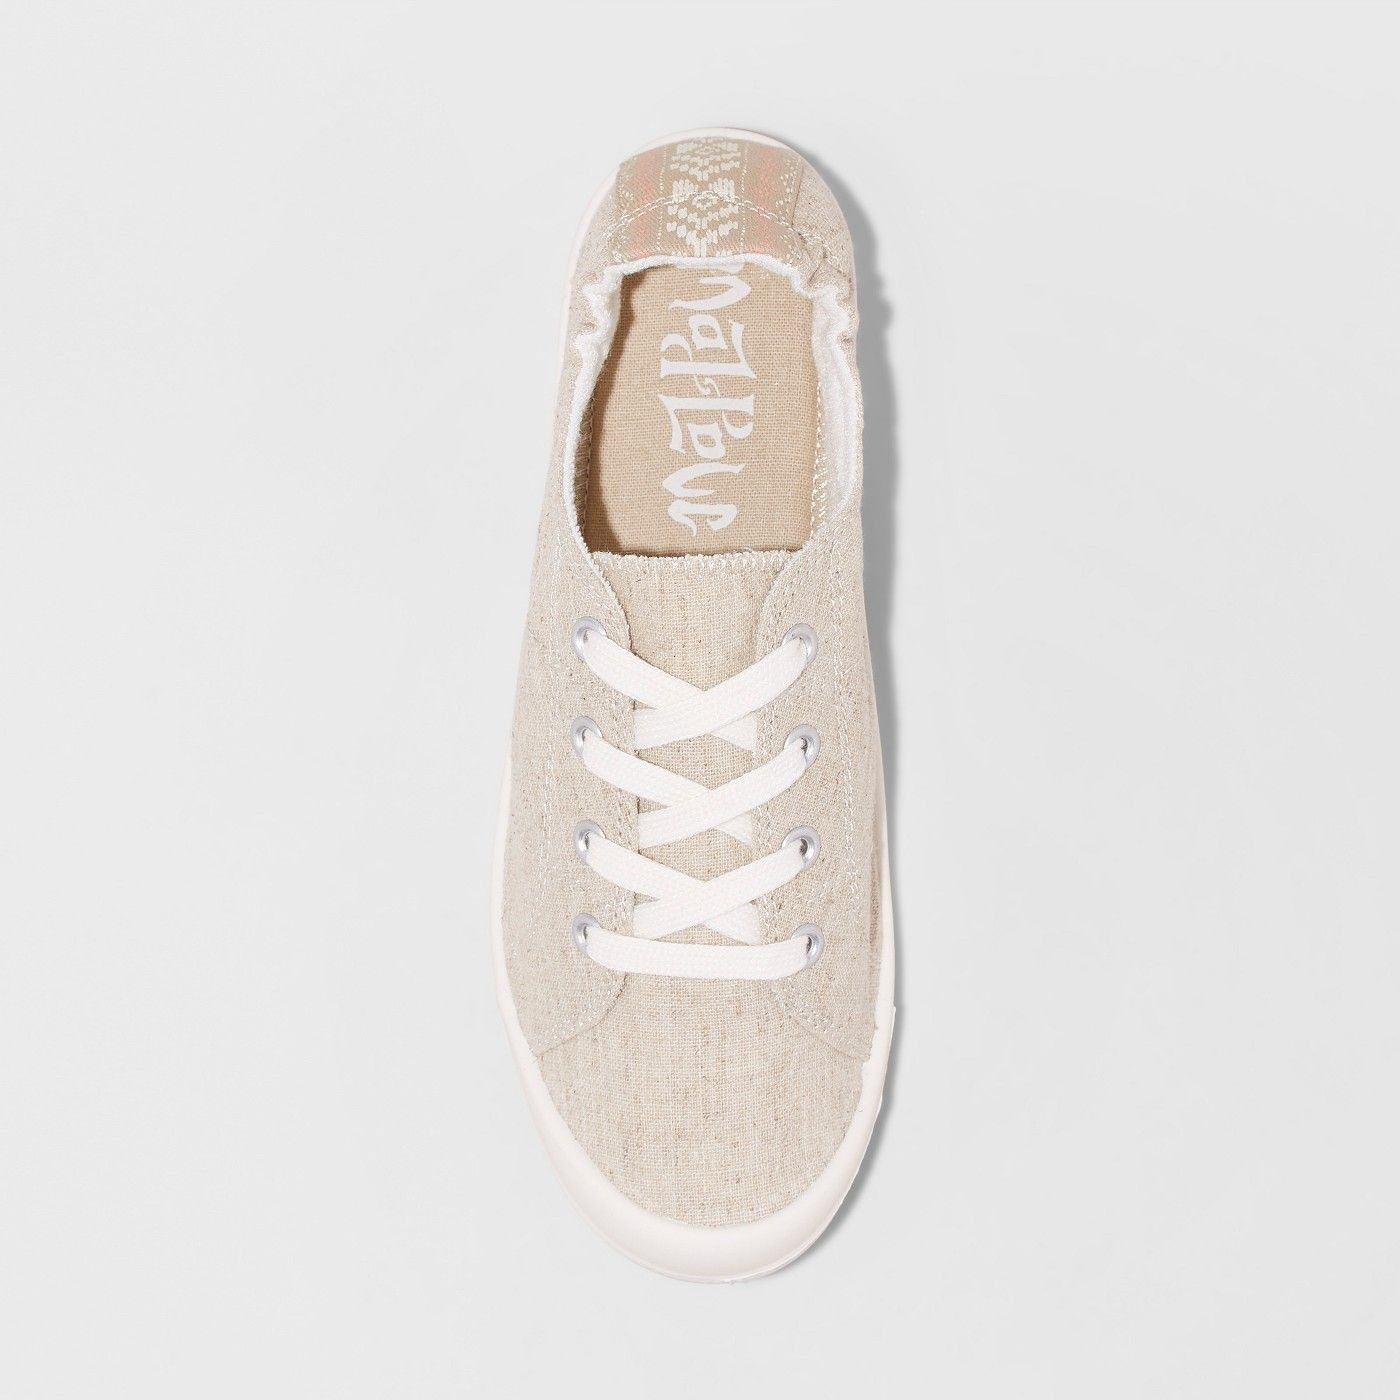 Mad Love Lennie Lace up Sneakers - Tan